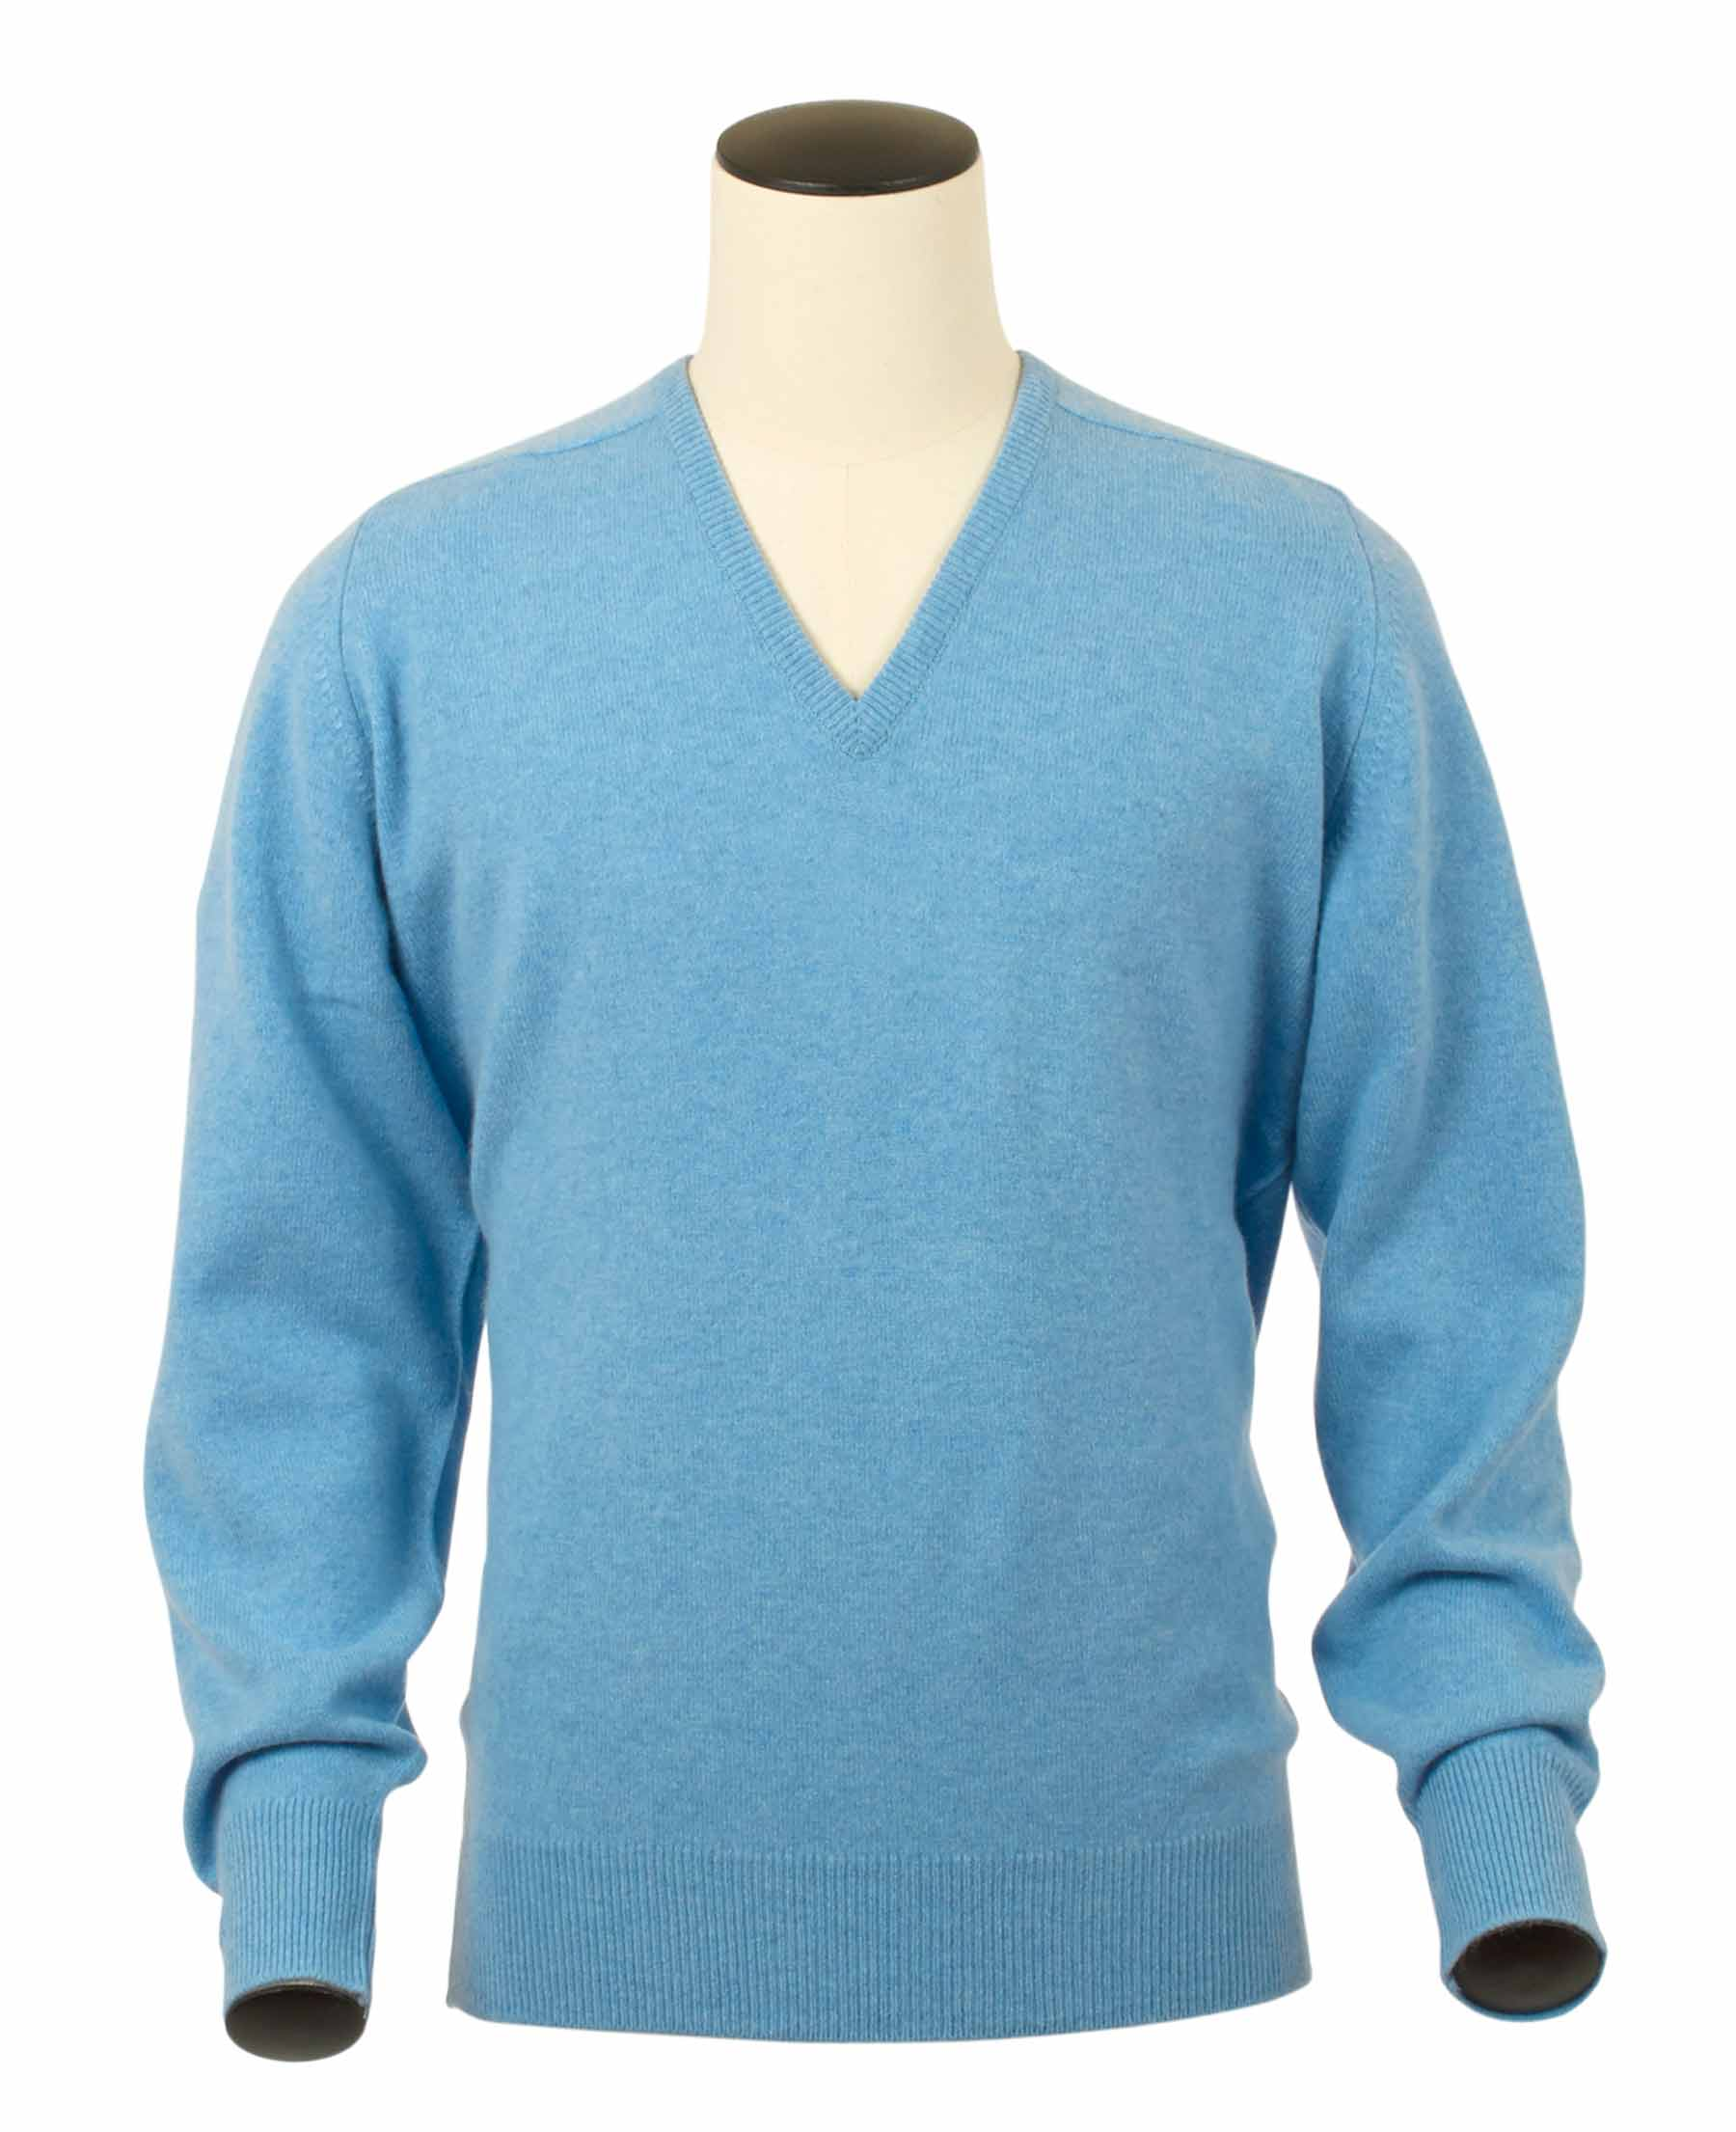 Scott, Couleur Horizon, Pull col V en 100% lambswool - Vêtements laine geelong